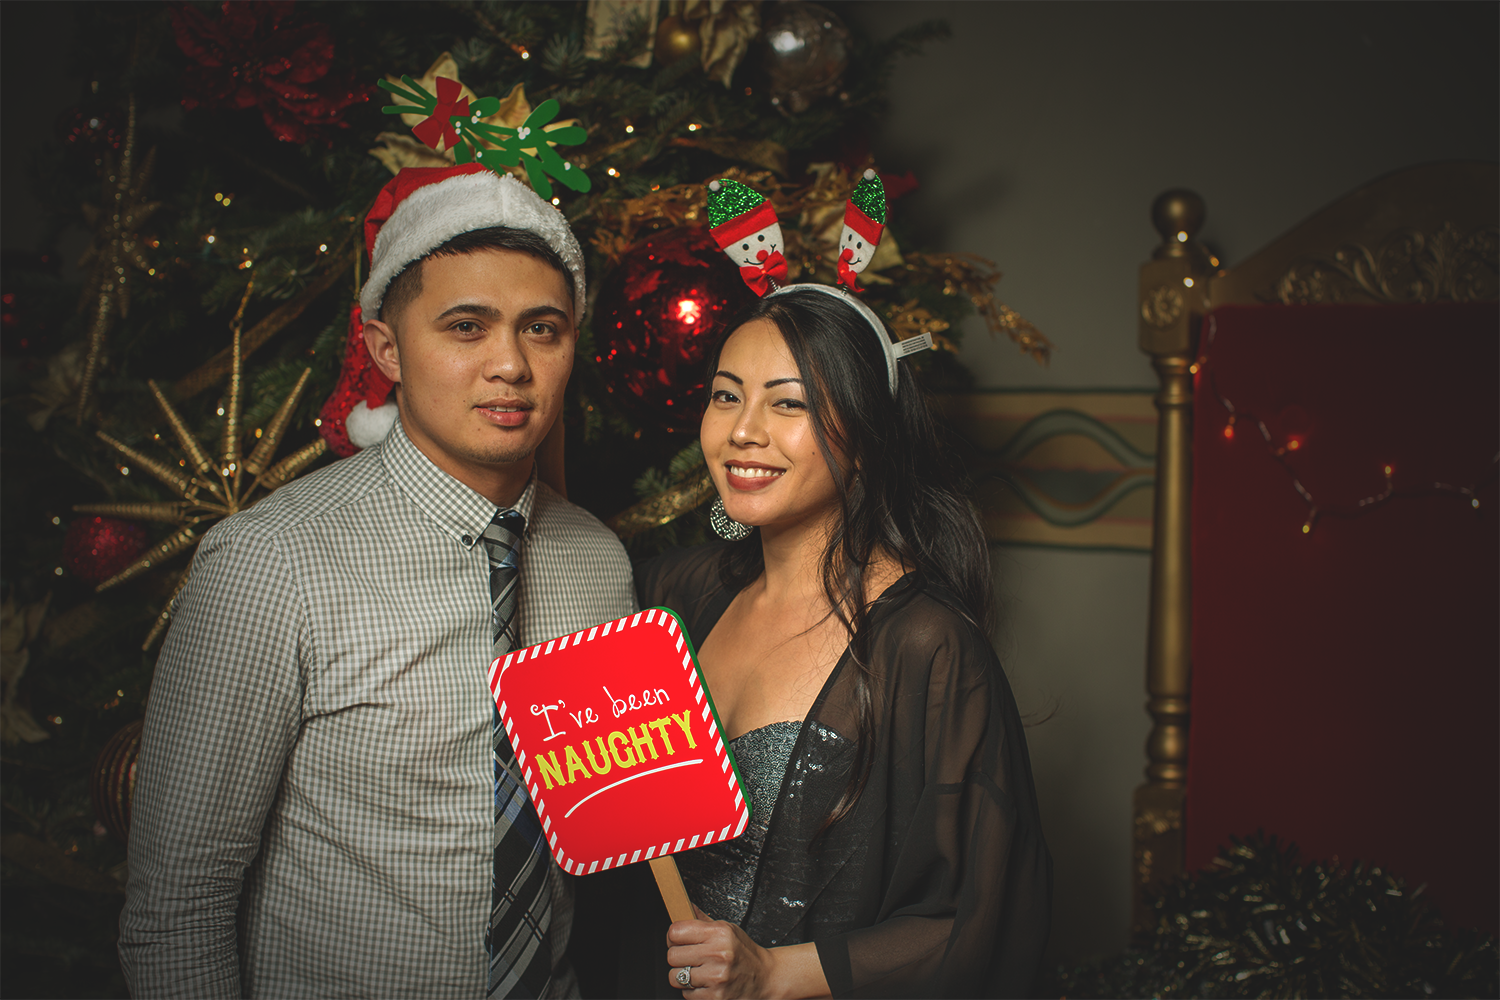 epproperties-vancouver-washington-xmas-party-photolga29.png